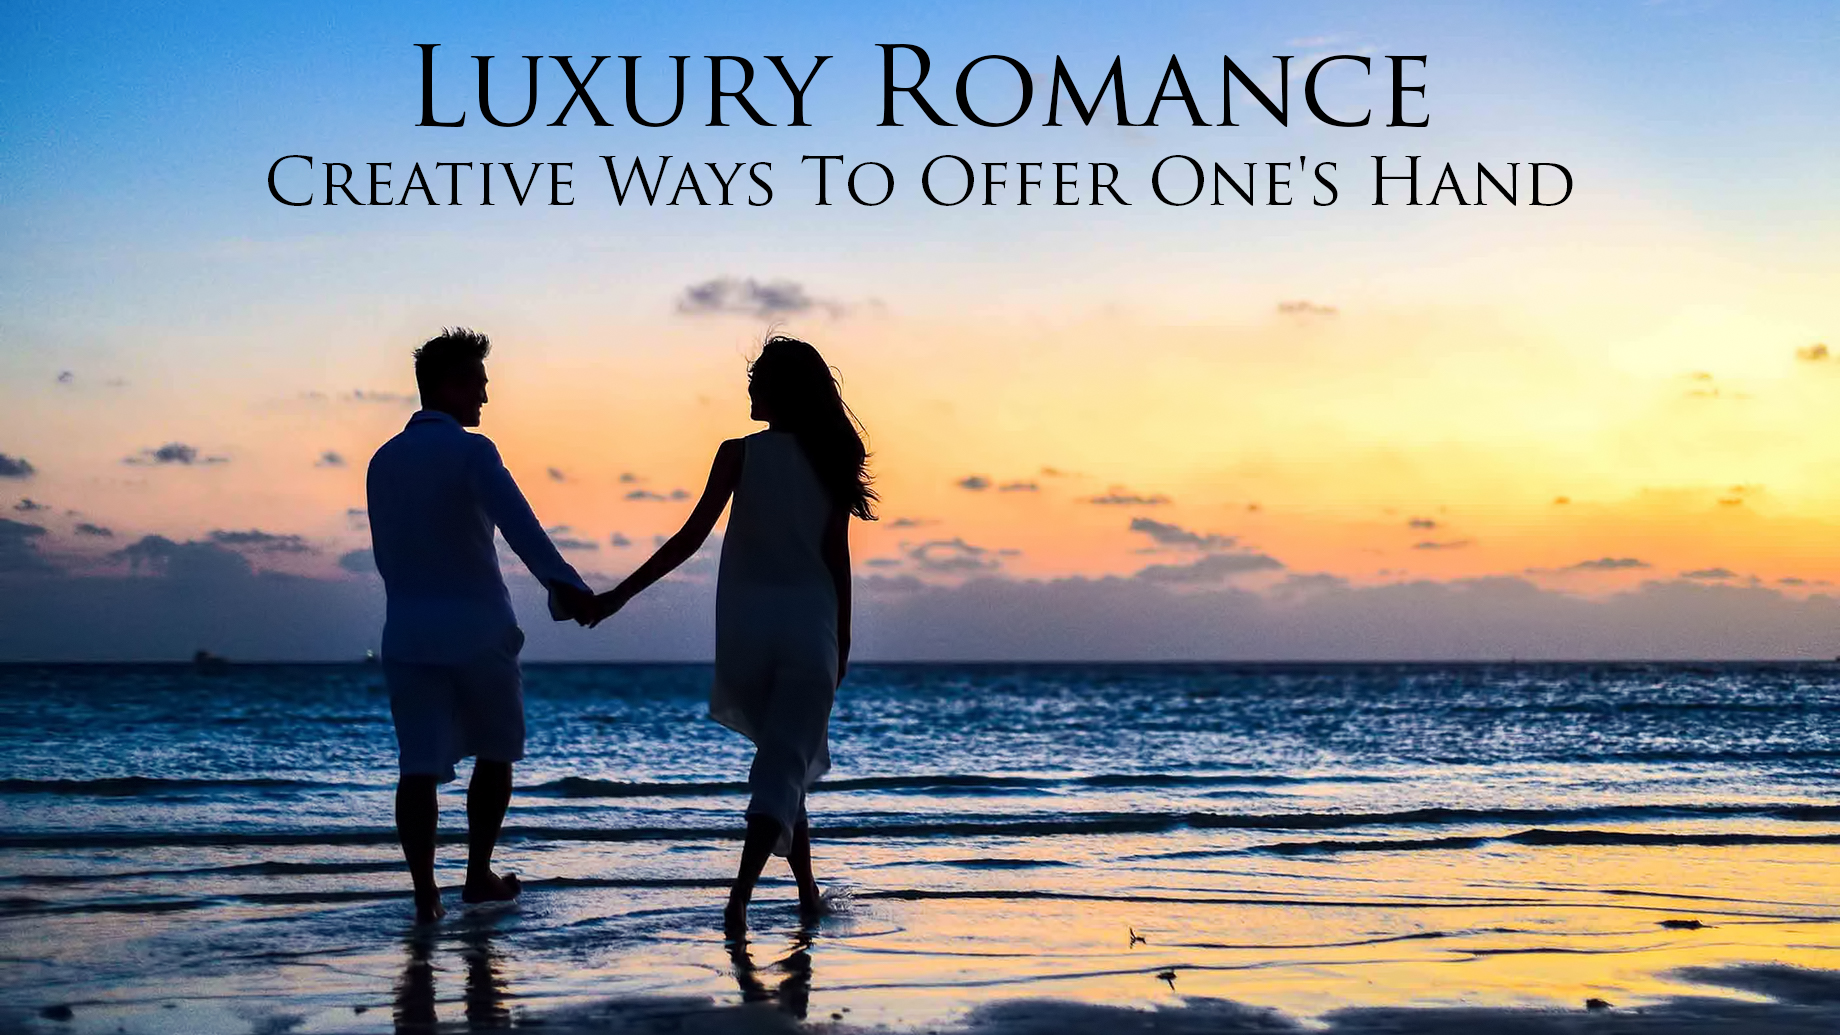 Luxury Romance - Creative Ways To Offer One's Hand